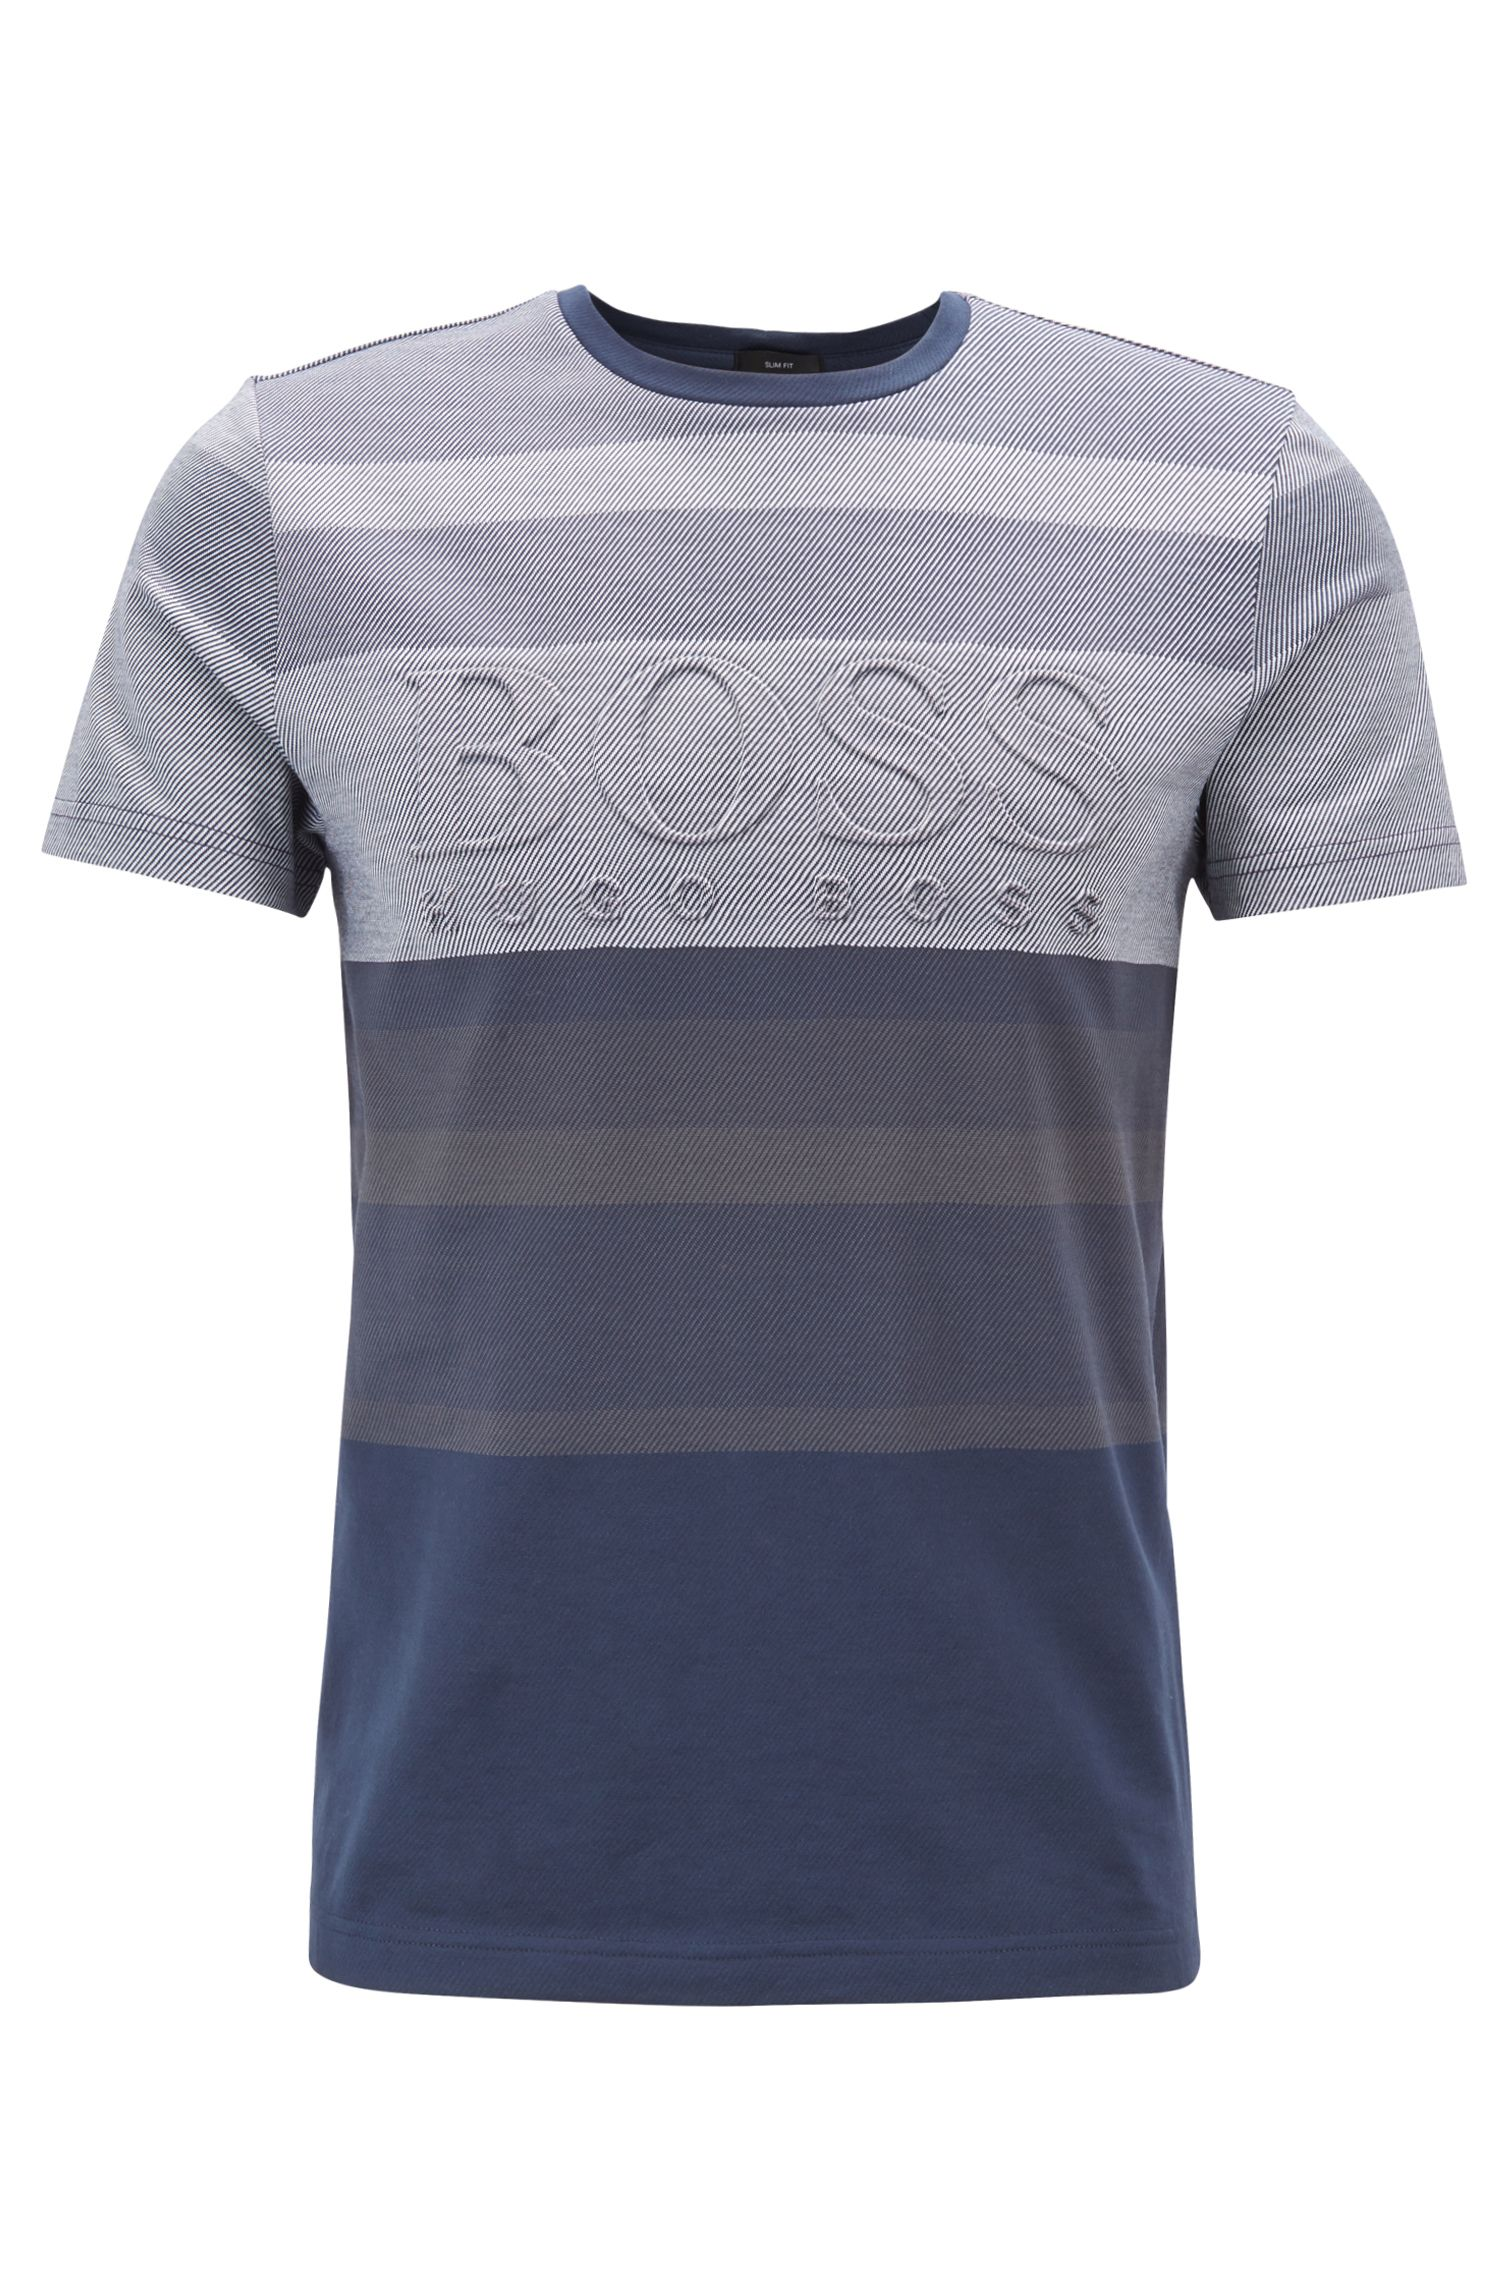 Cotton-jacquard T-shirt with irregular stripes and embossed logo, Blue